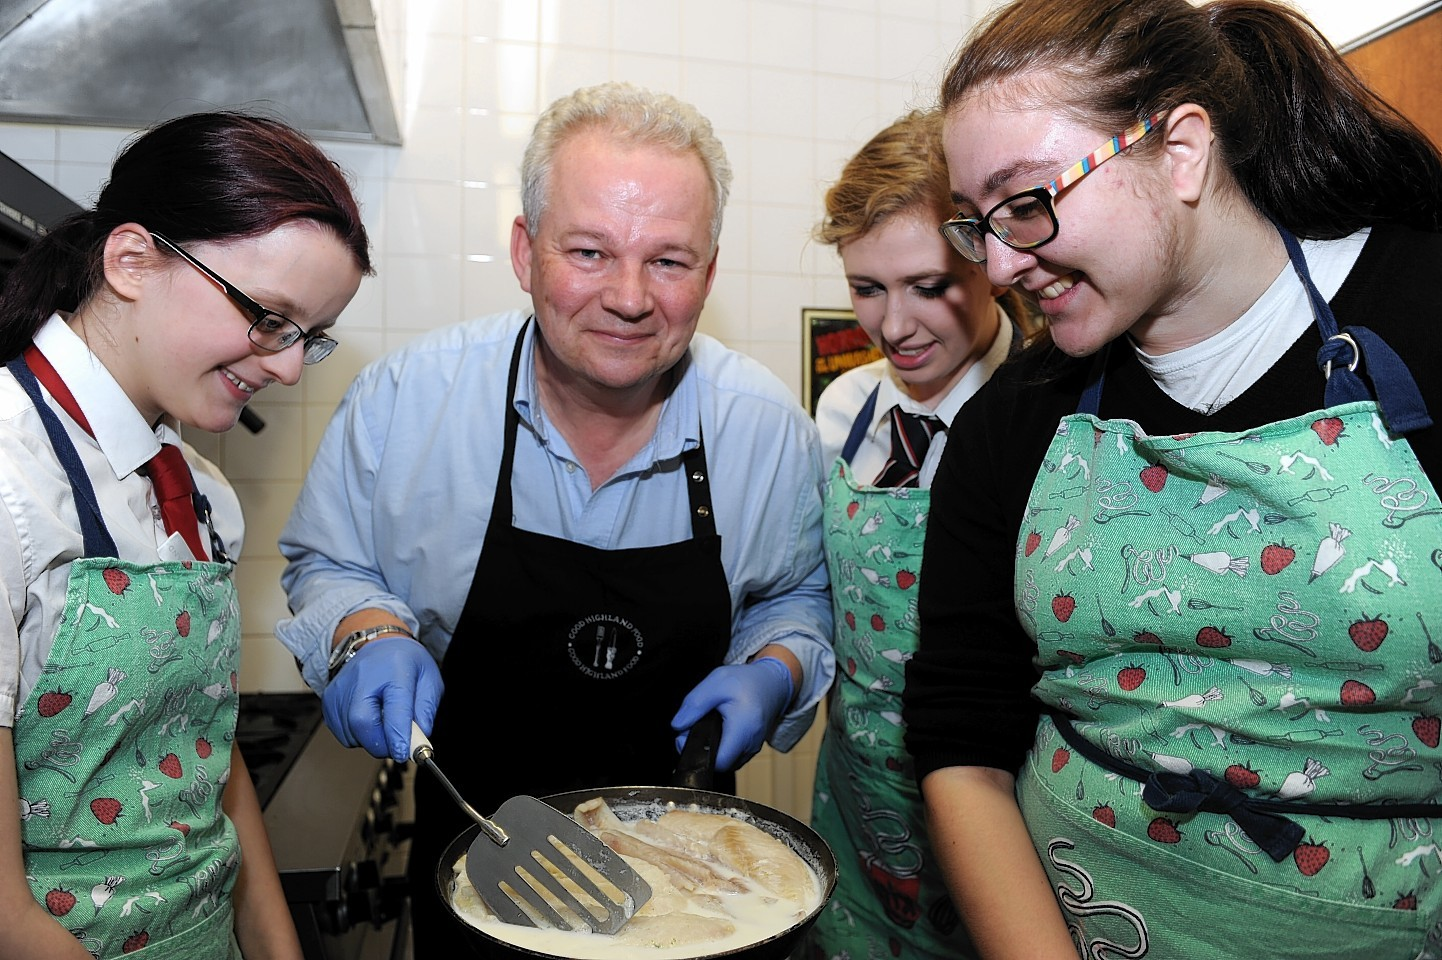 Elgin Academy students learned how to make smoked haddock fishcakes in the Elgin Youth Café kitchen